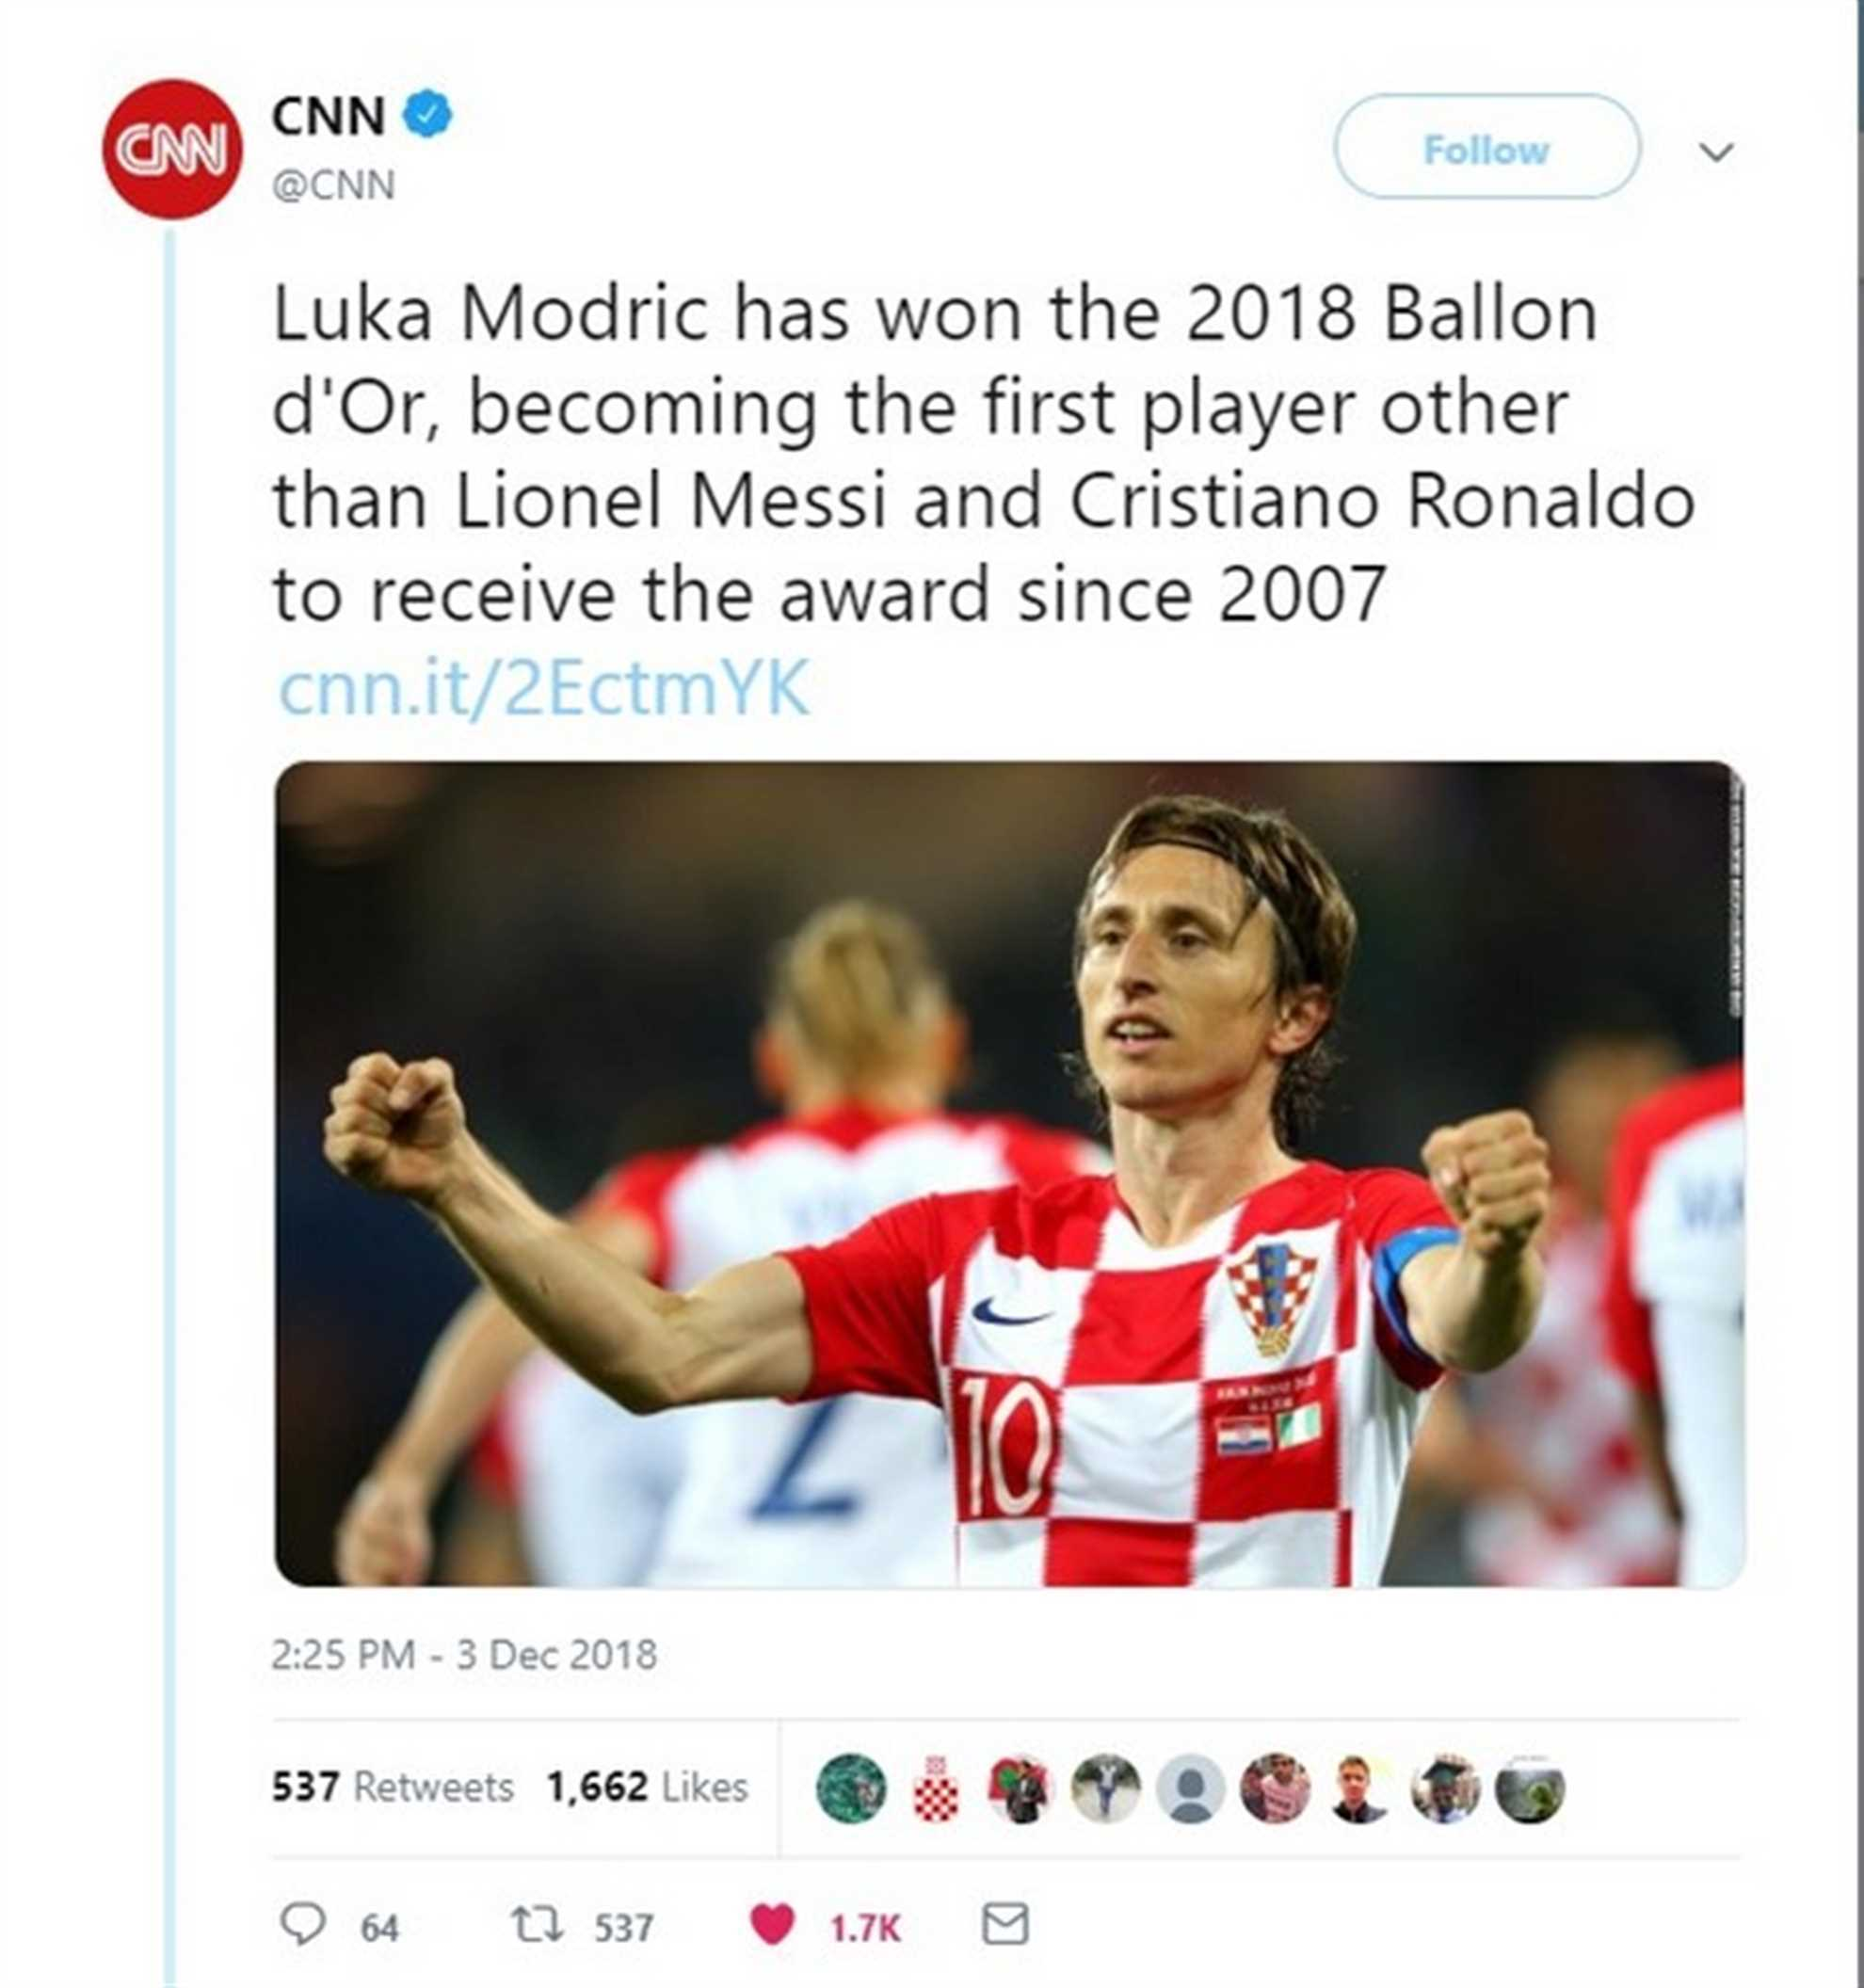 CNN reports about Luka Modric